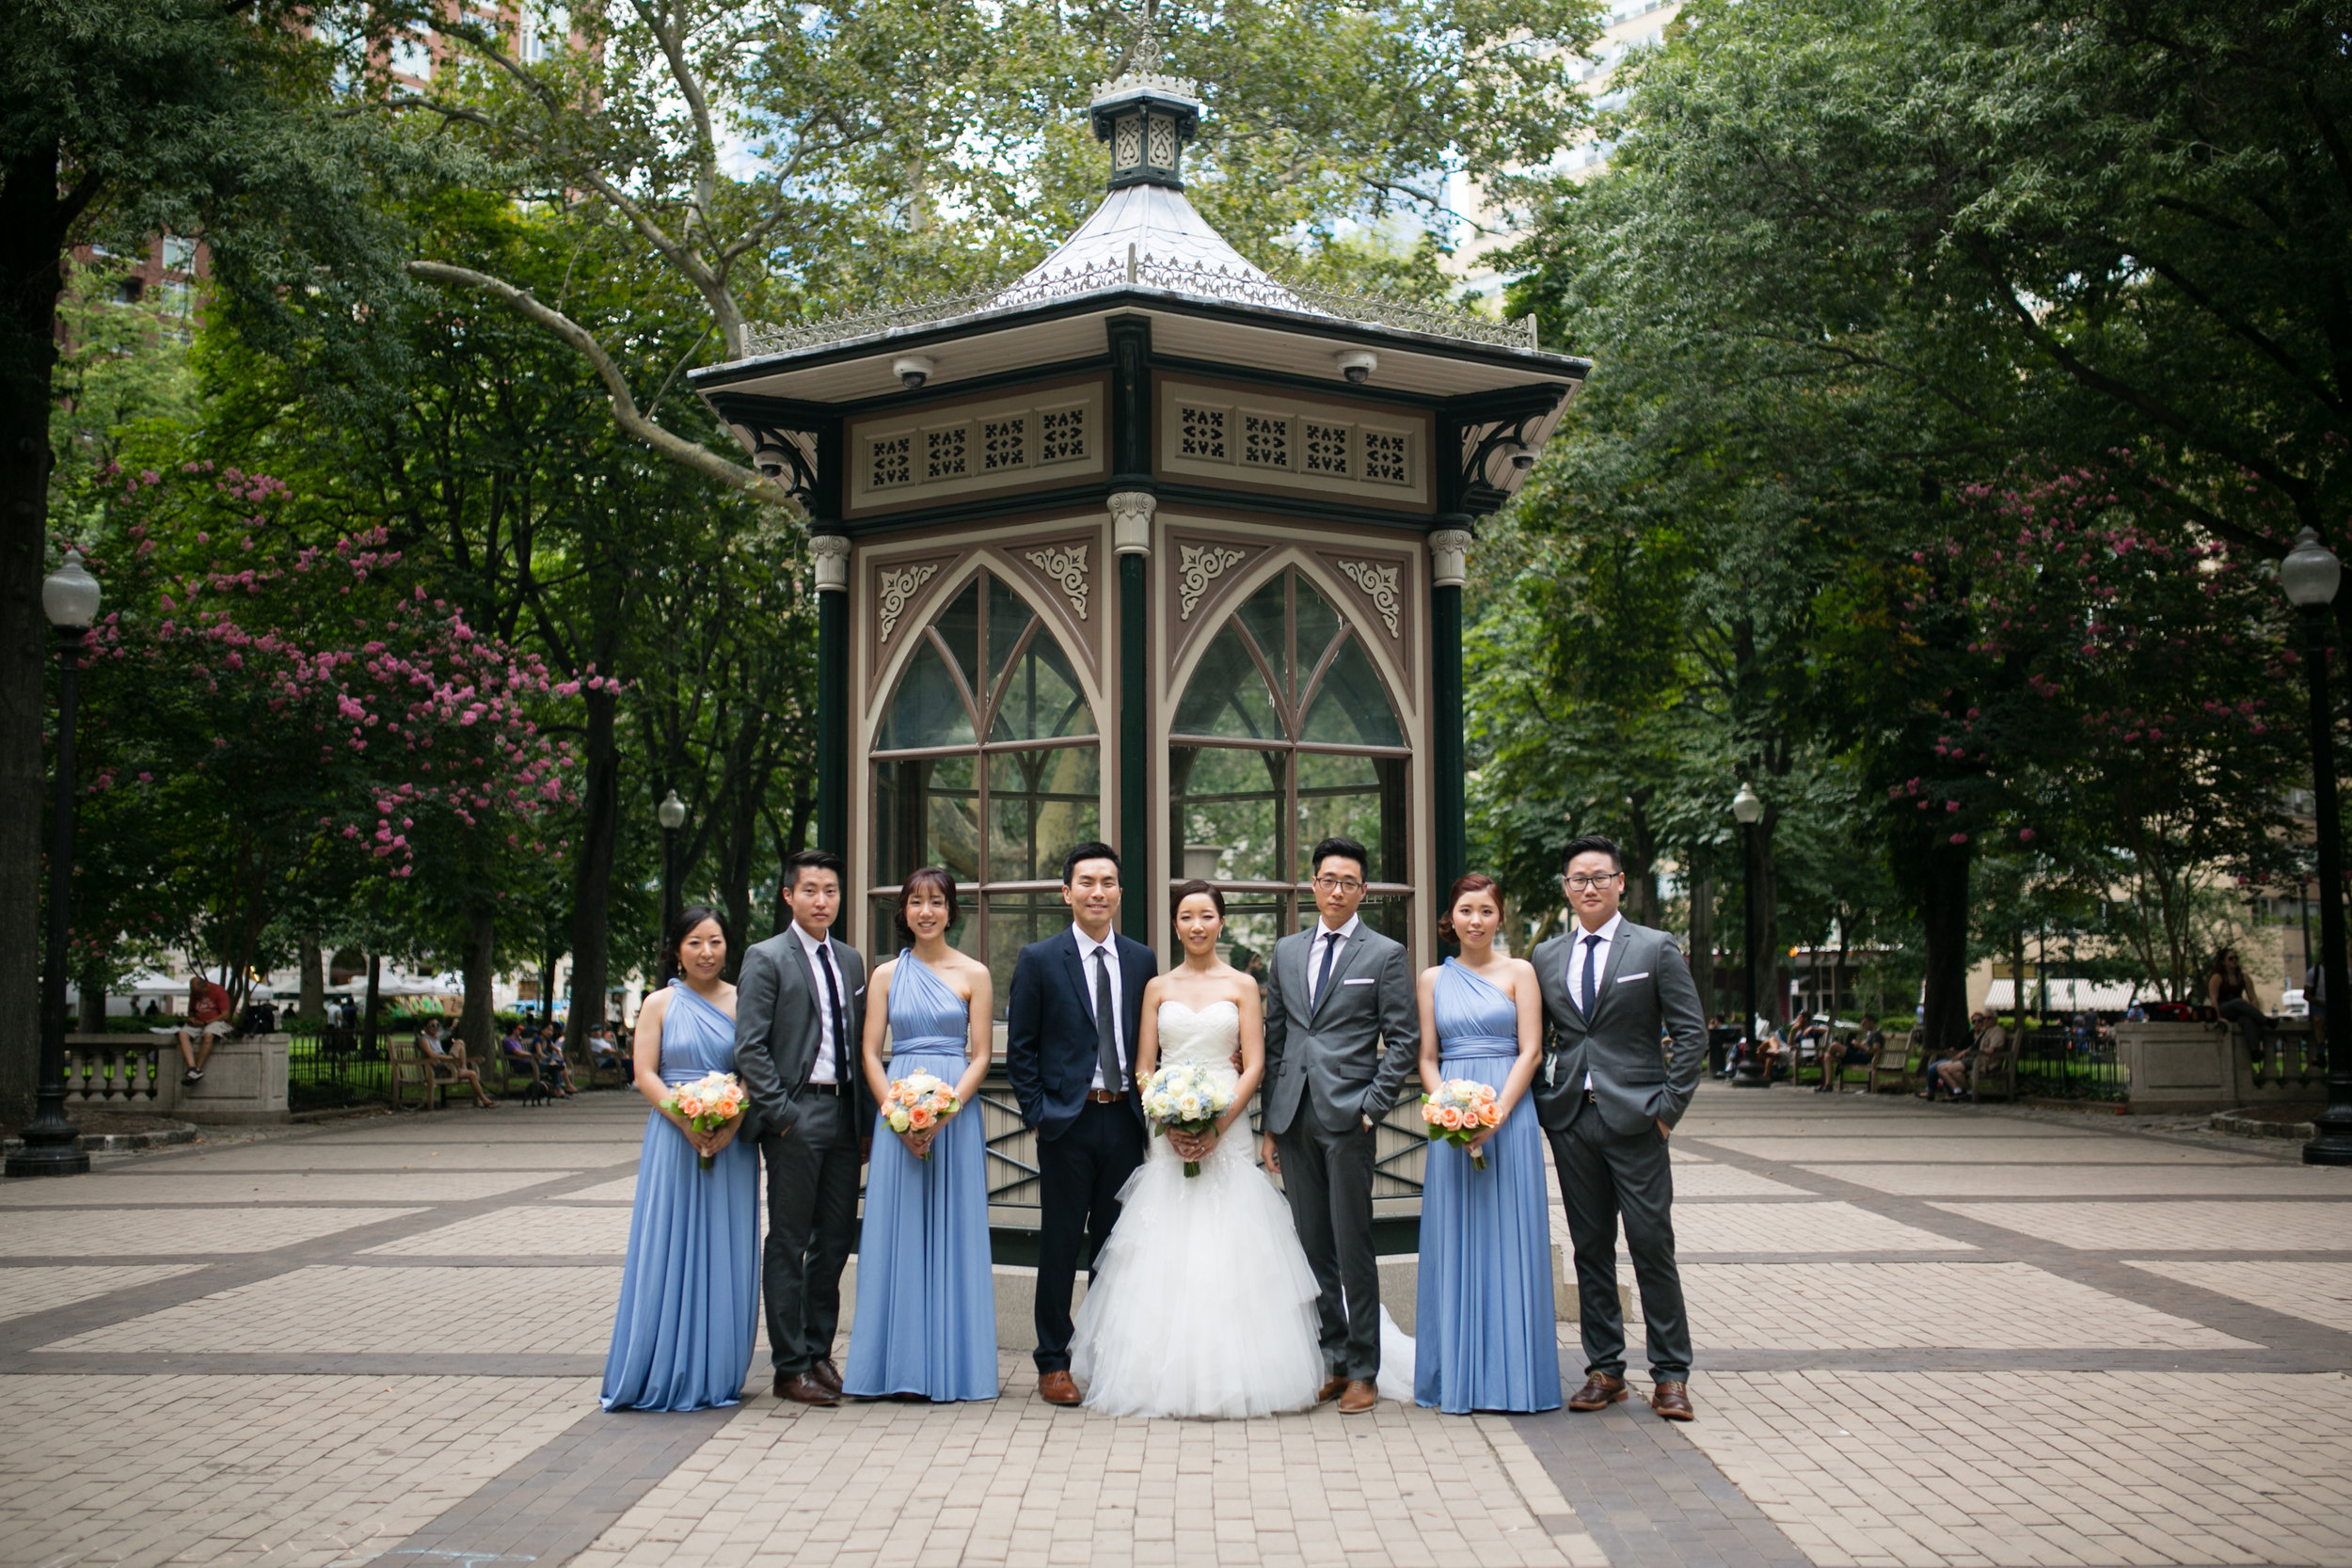 Racquet Club wedding by Peach Plum Pear Photo_010.jpg